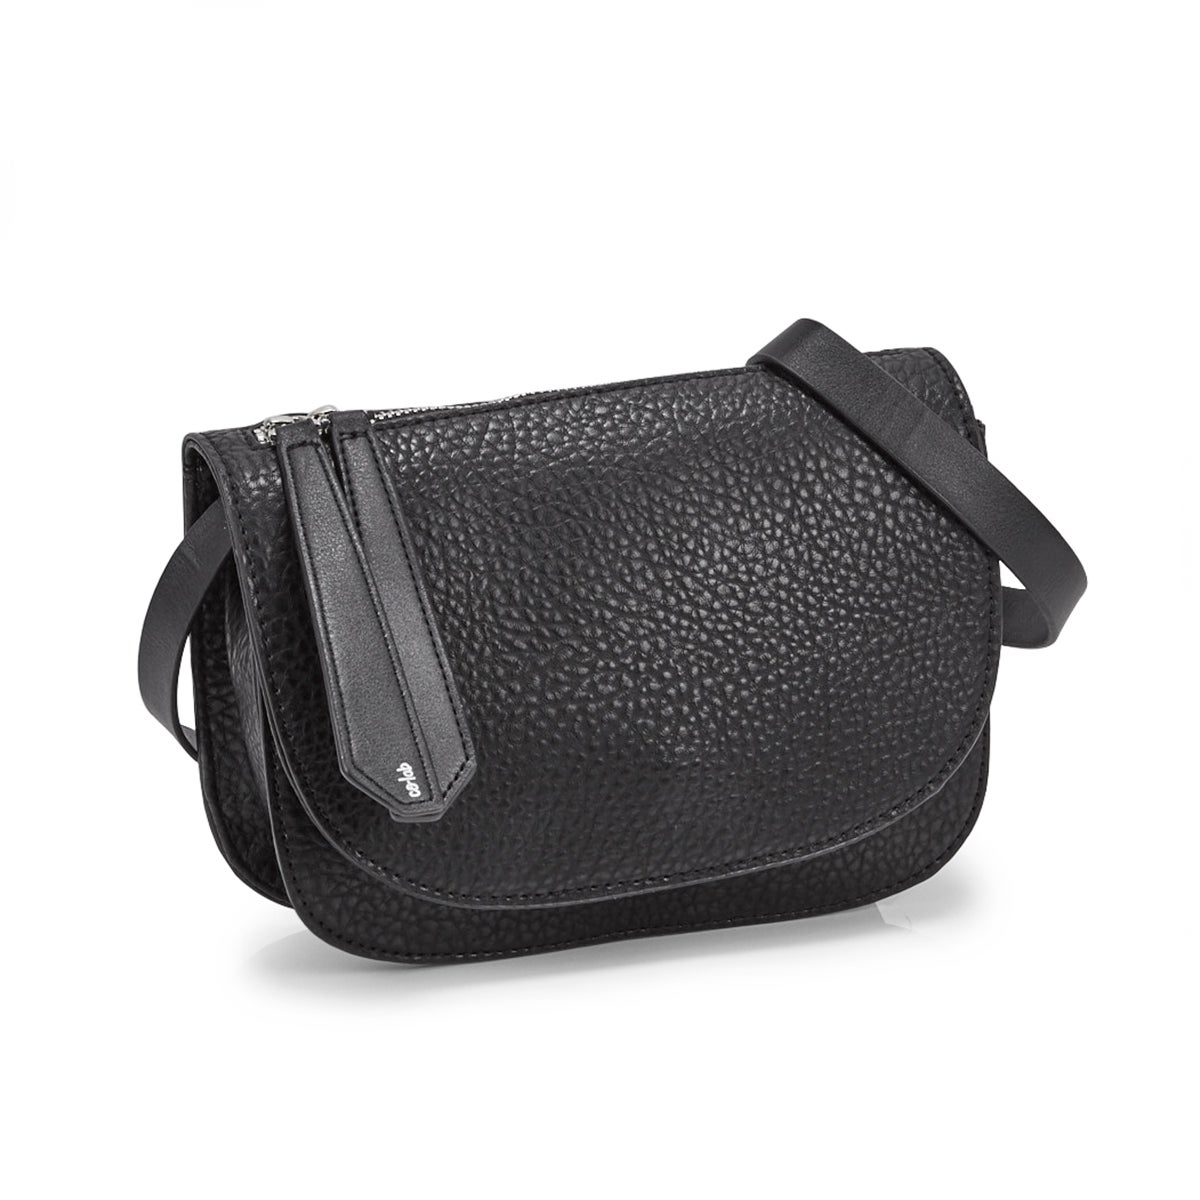 Women's 5642 MINI SADDLE black cross body bag